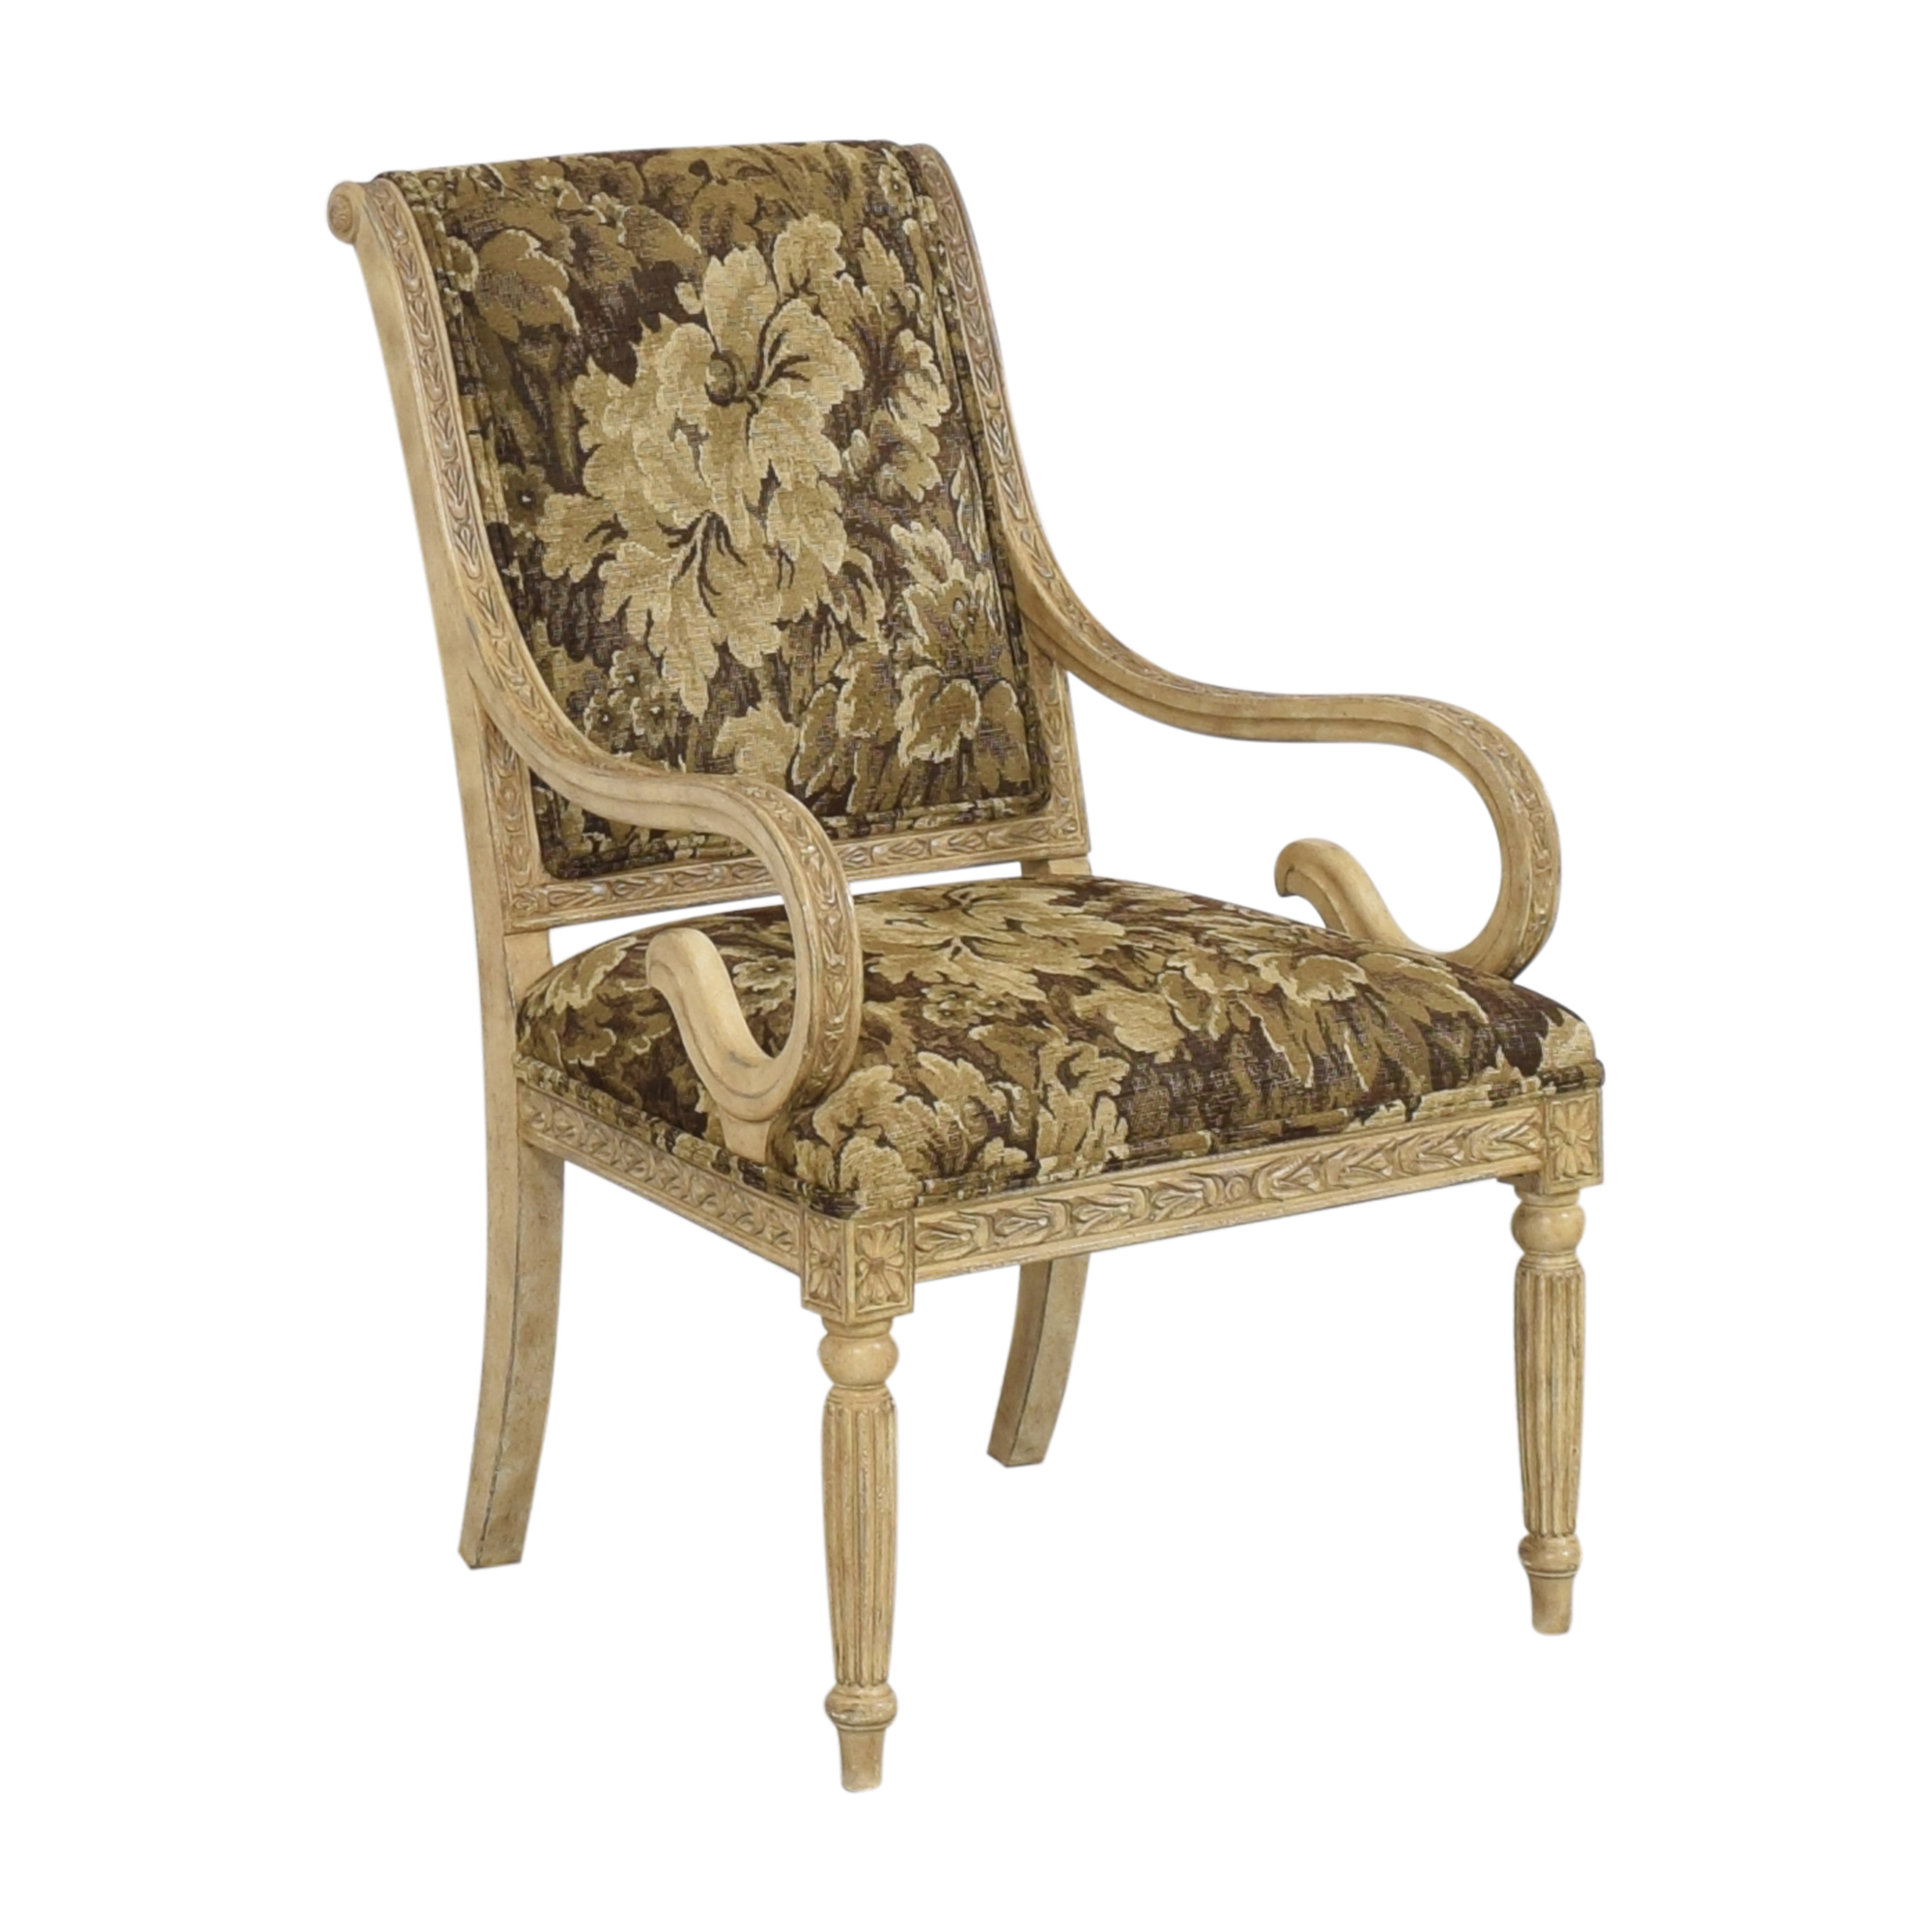 Calico Calico Decorative Accent Chair nj